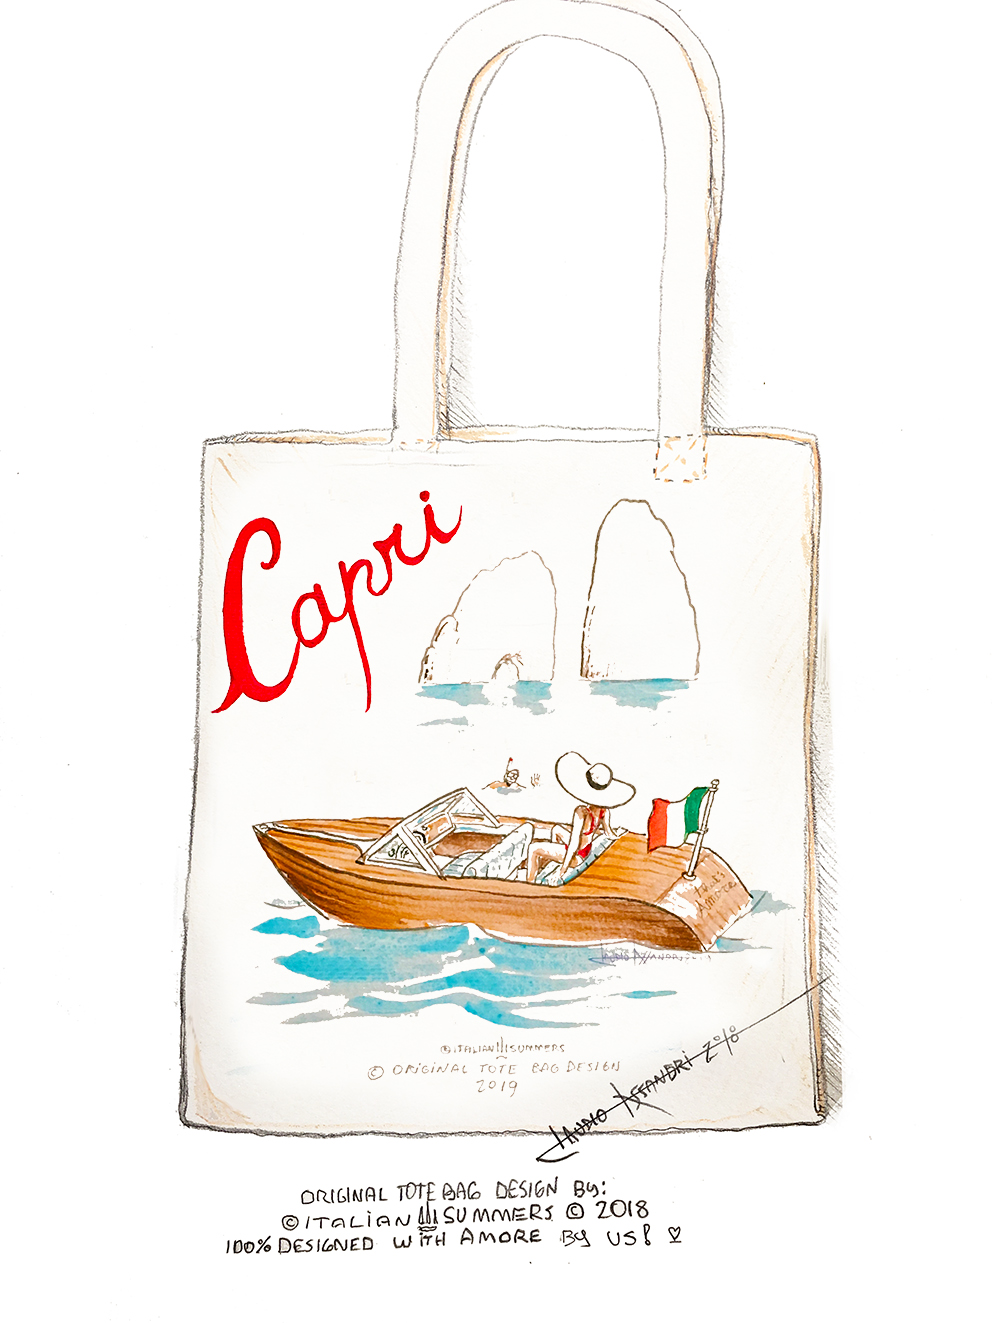 Personalized gifts for Italian Weddings